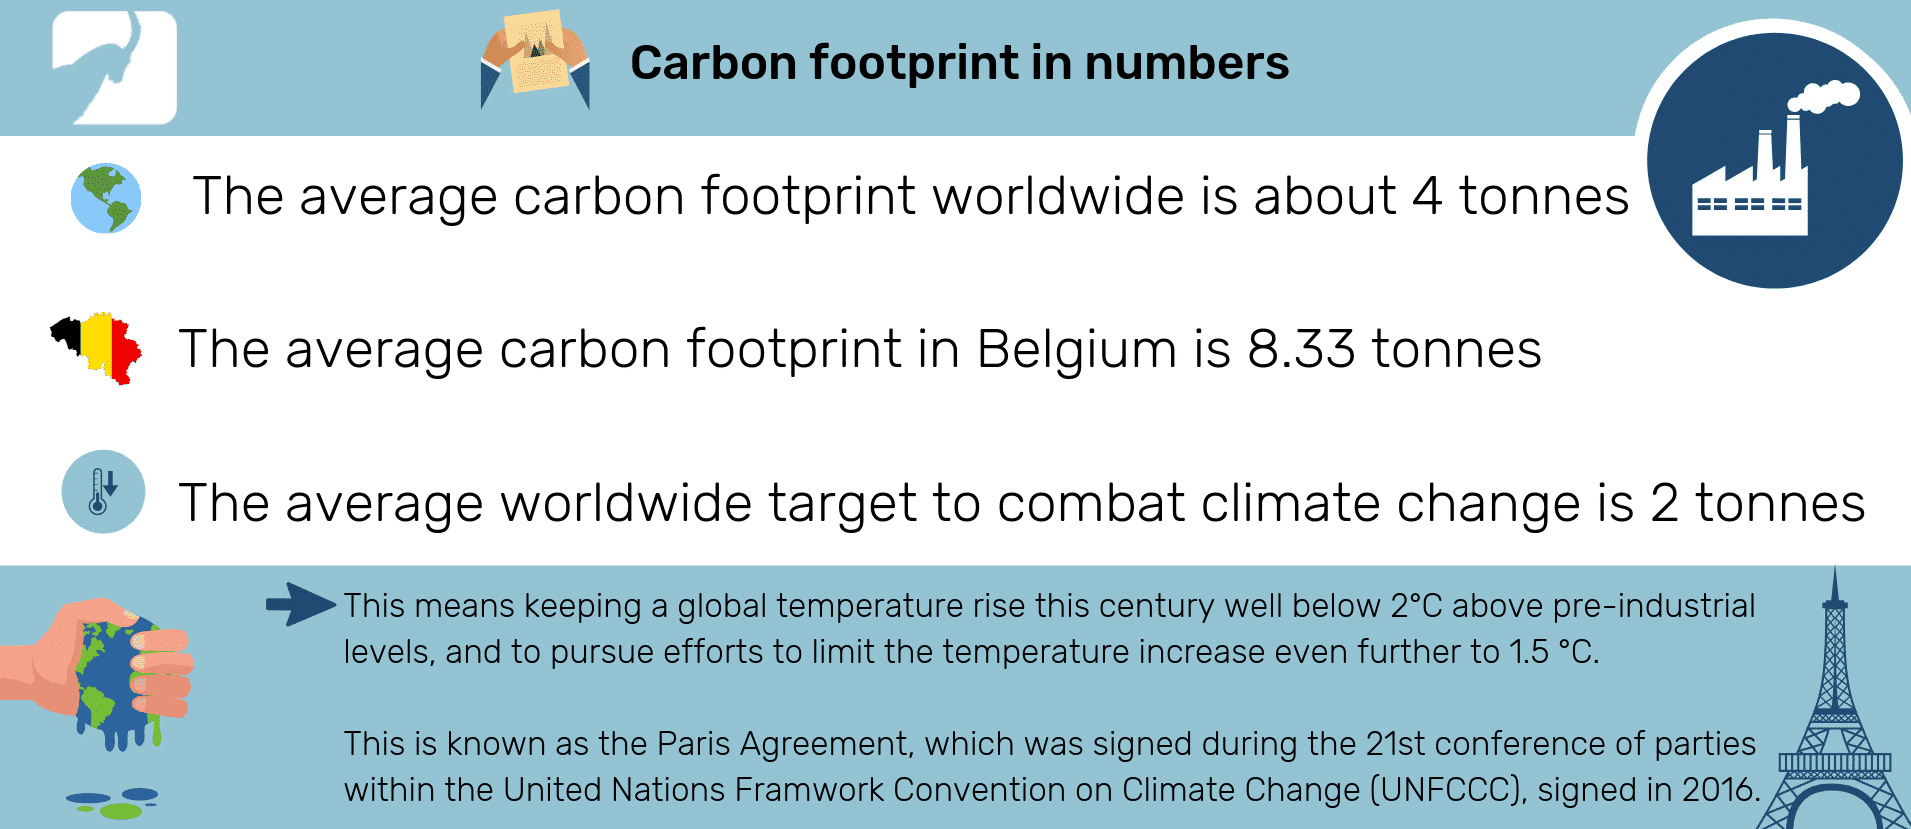 The average worldwide carbon footprint is about 4 tonnes